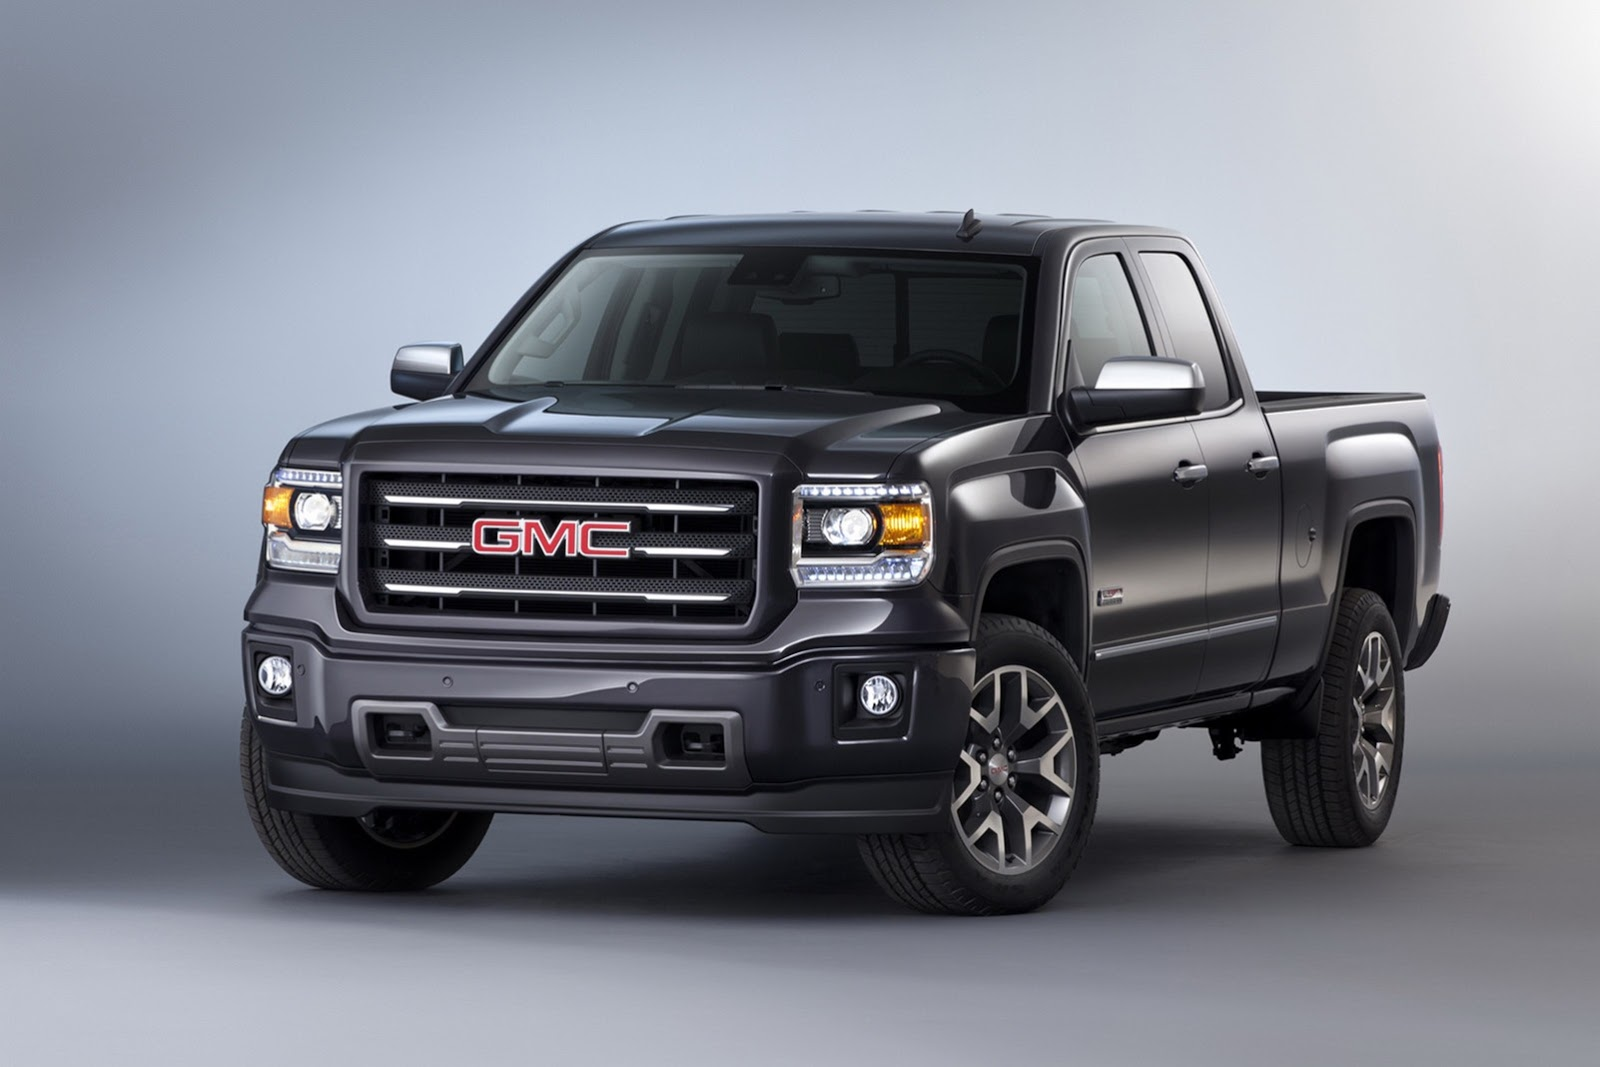 2014 gmc sierra specs pricing announced autoevolution. Black Bedroom Furniture Sets. Home Design Ideas